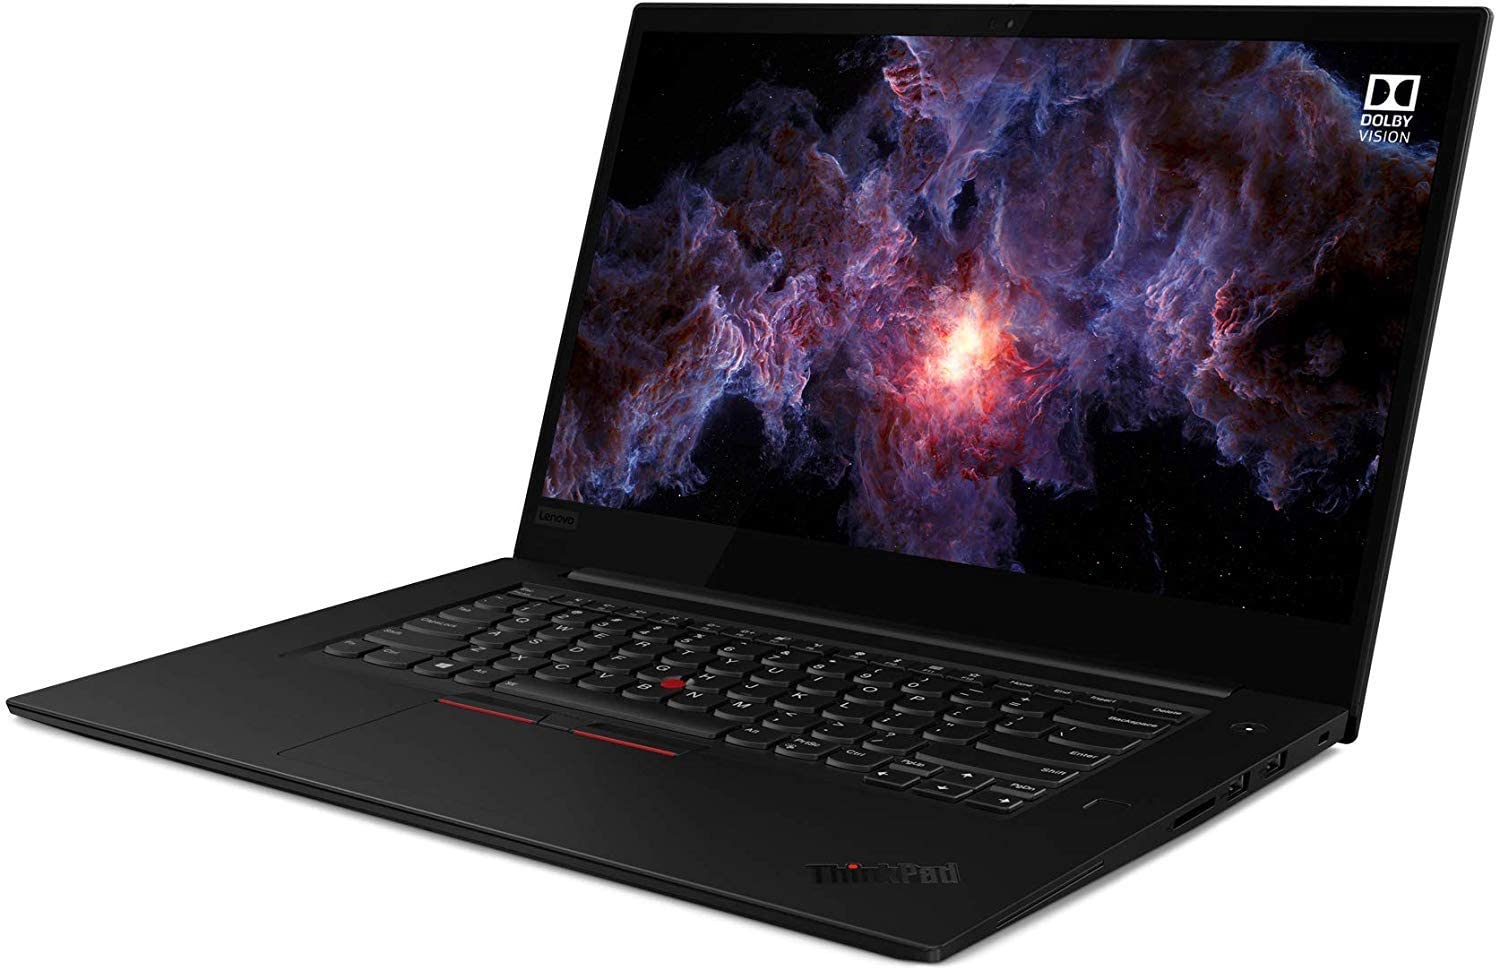 "Lenovo Thinkpad X1 Extreme (2nd Gen) 20QV0009US 15.6"" IPS 1920 x 1080 HD Notebook - Core i7 9750H / 2.6 GHz - Win 10 Pro 64-bit - 16 GB RAM - 512 GB SSD - GTX 1650 Graphics"